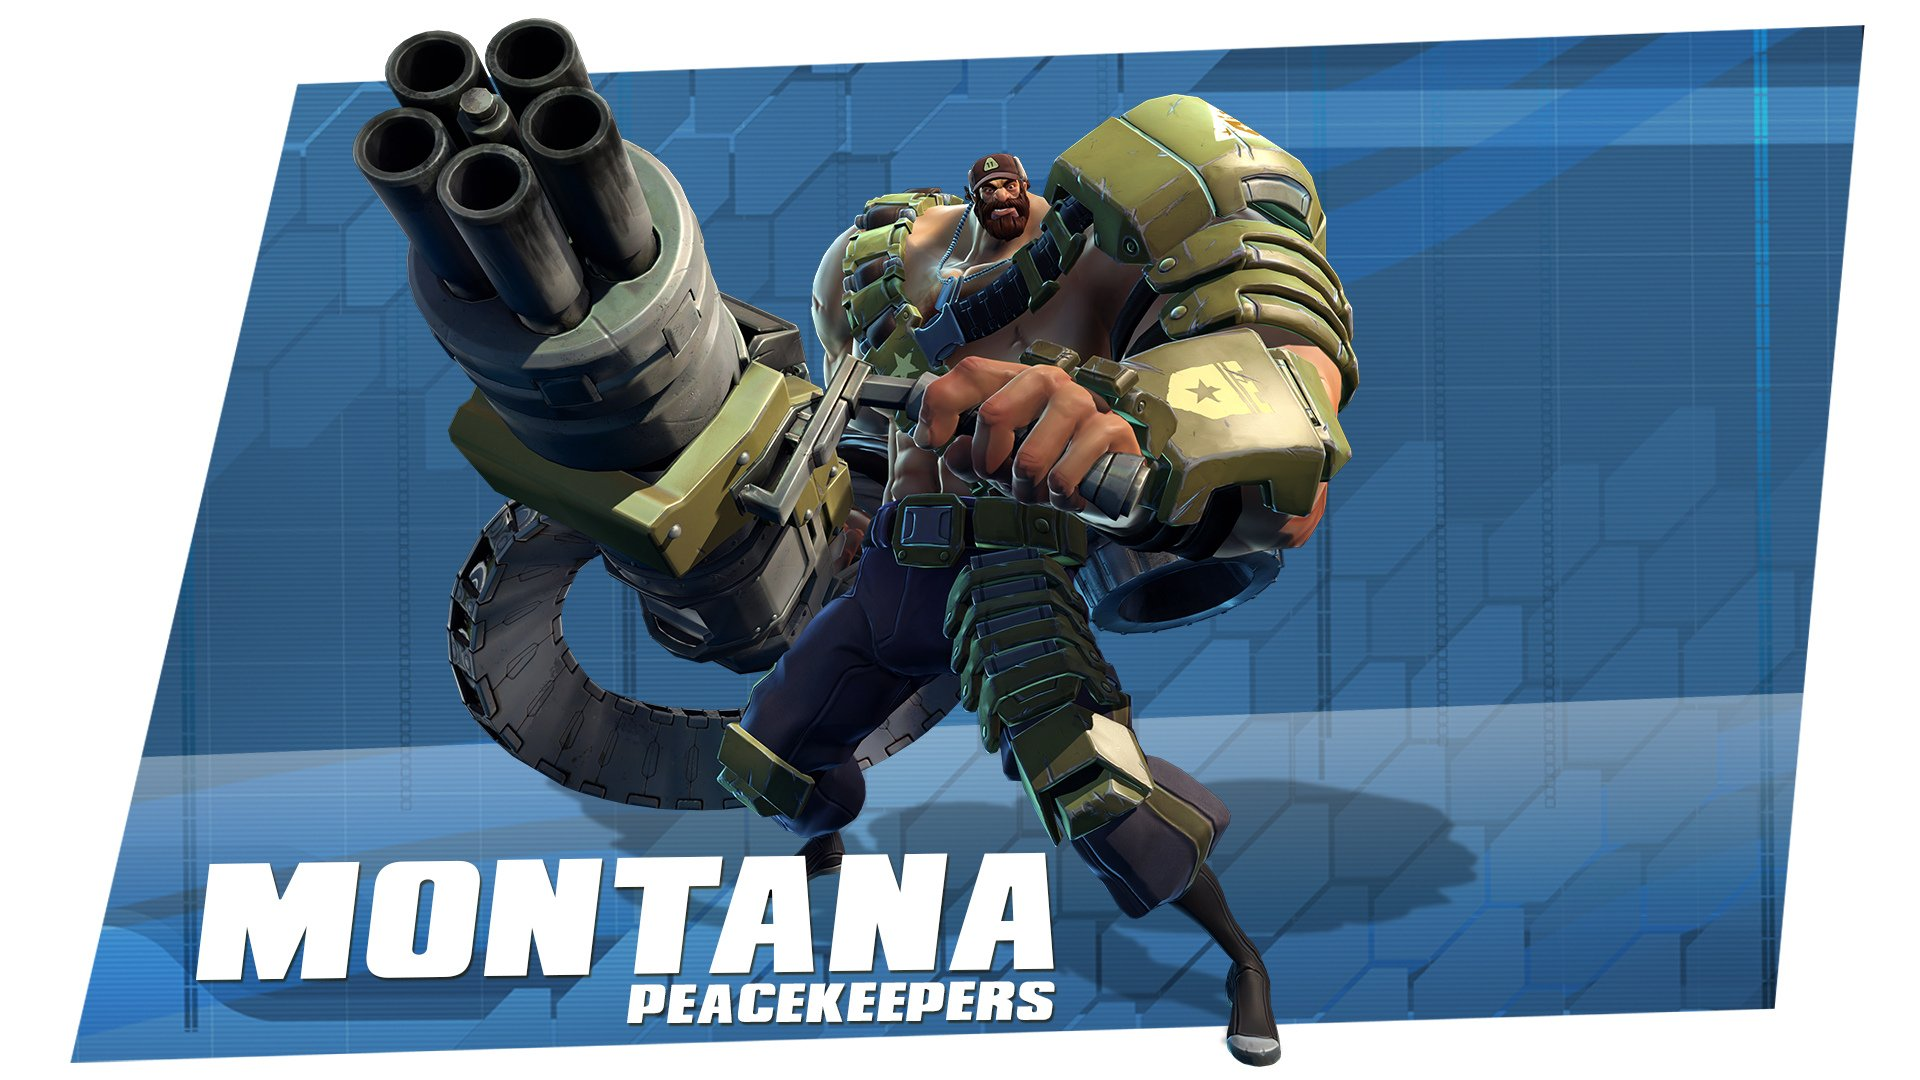 Montana Peacekeepers Battleborn